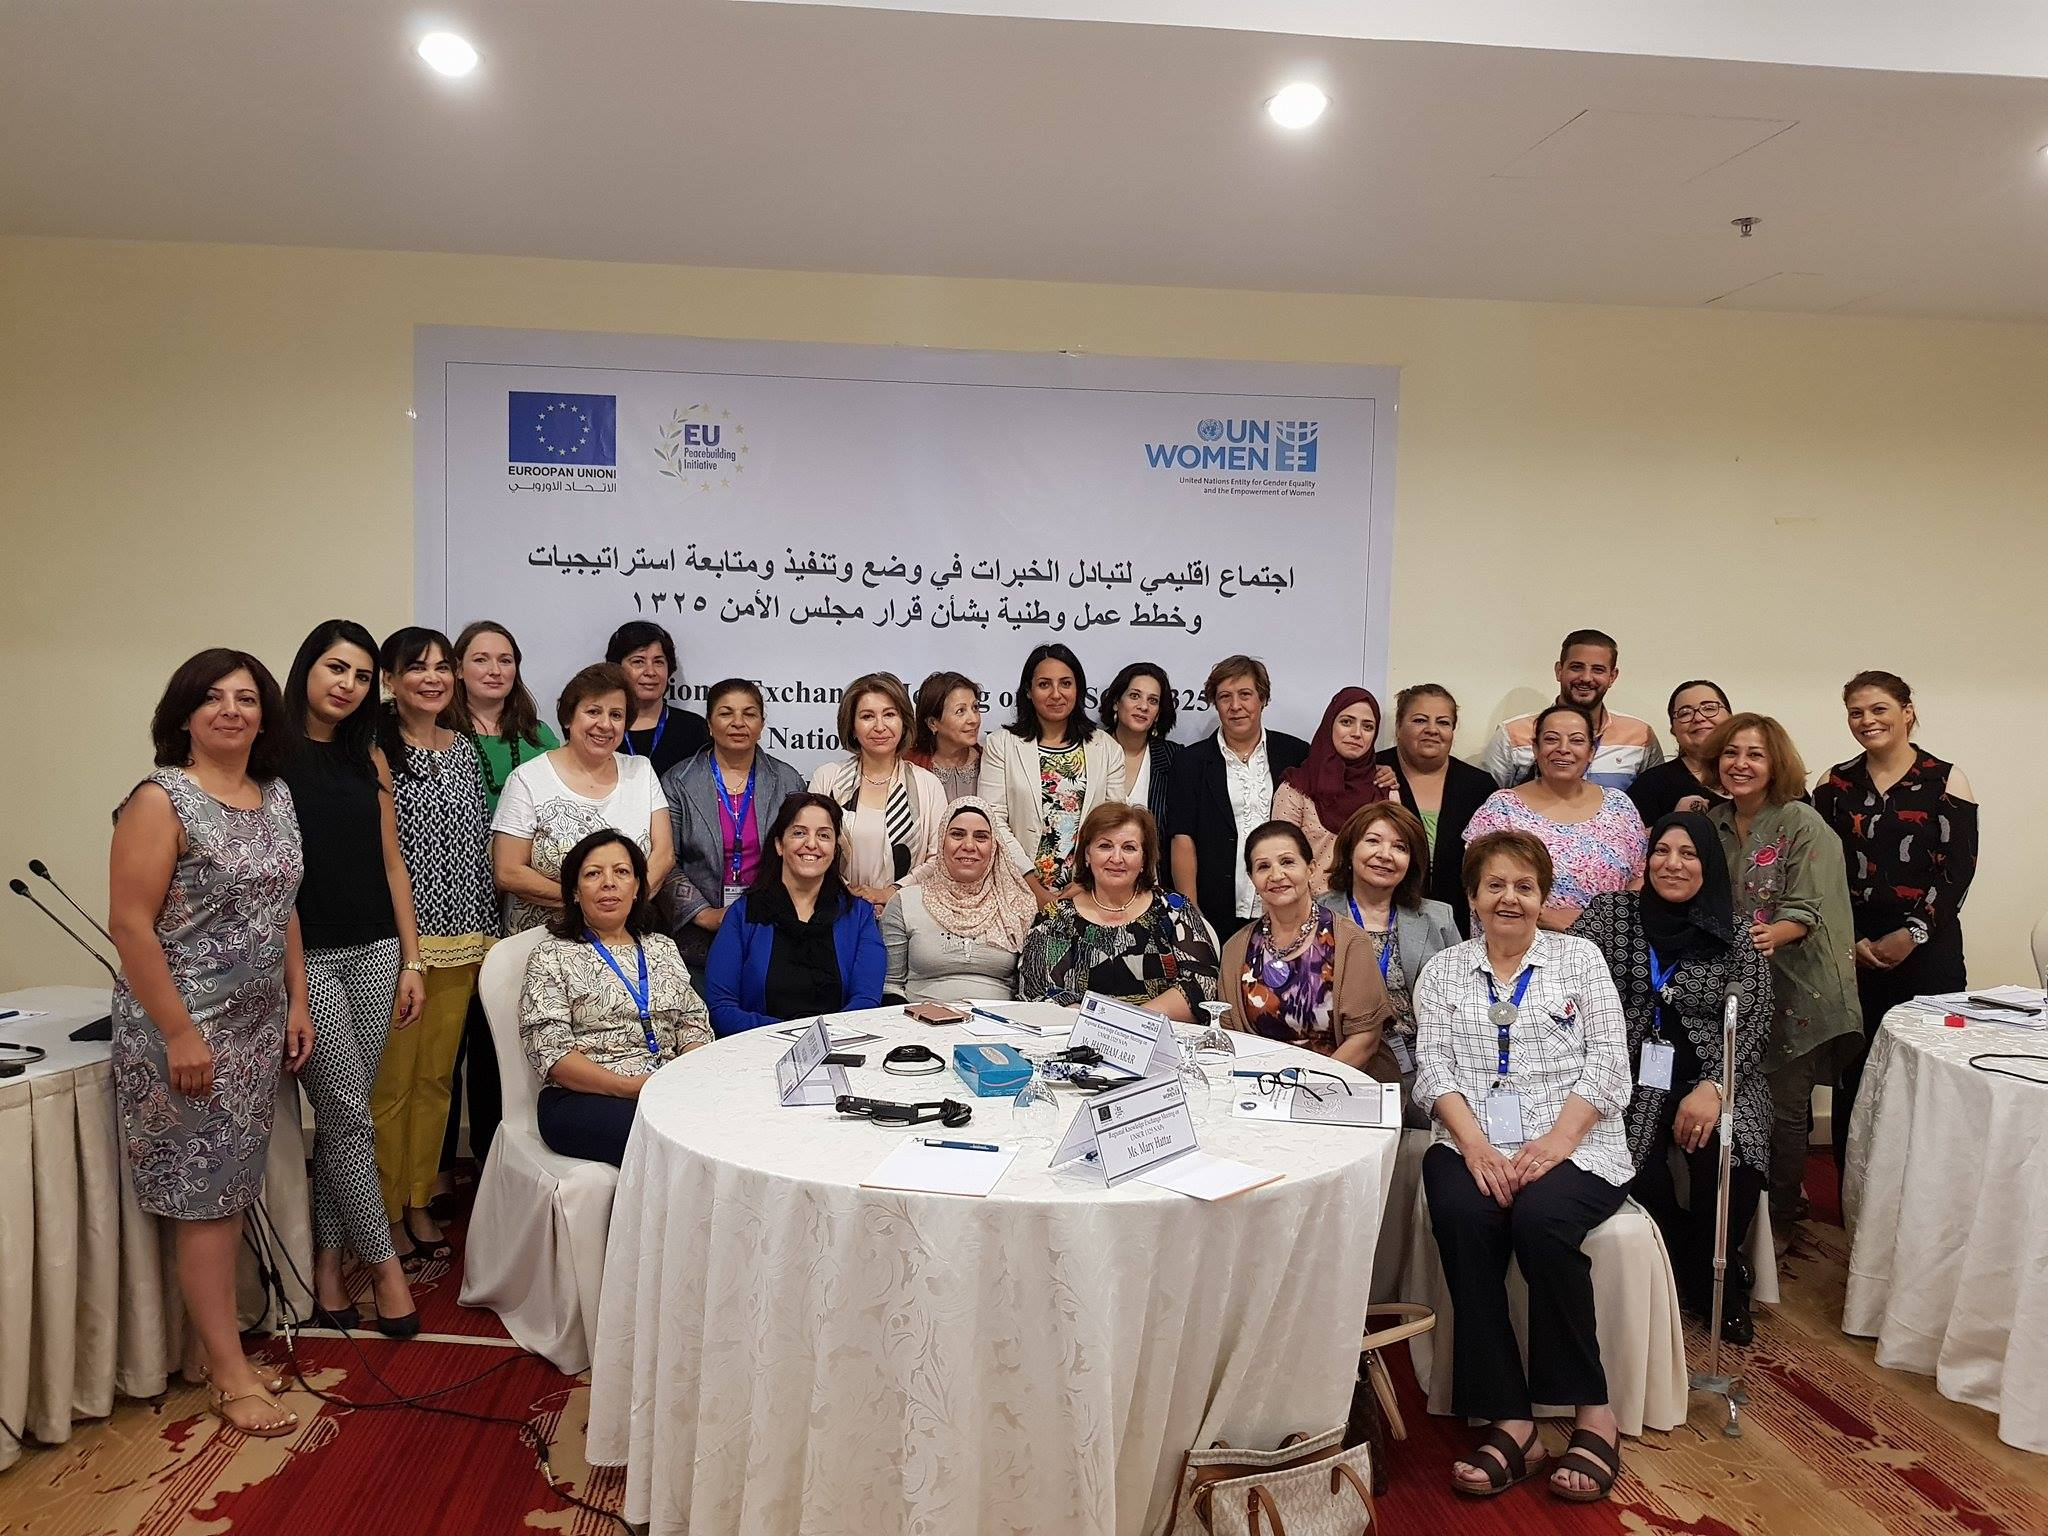 Women's Rights Organizations from Six Arab Countries Call for Joint Advocacy Efforts on Women Peace and Security